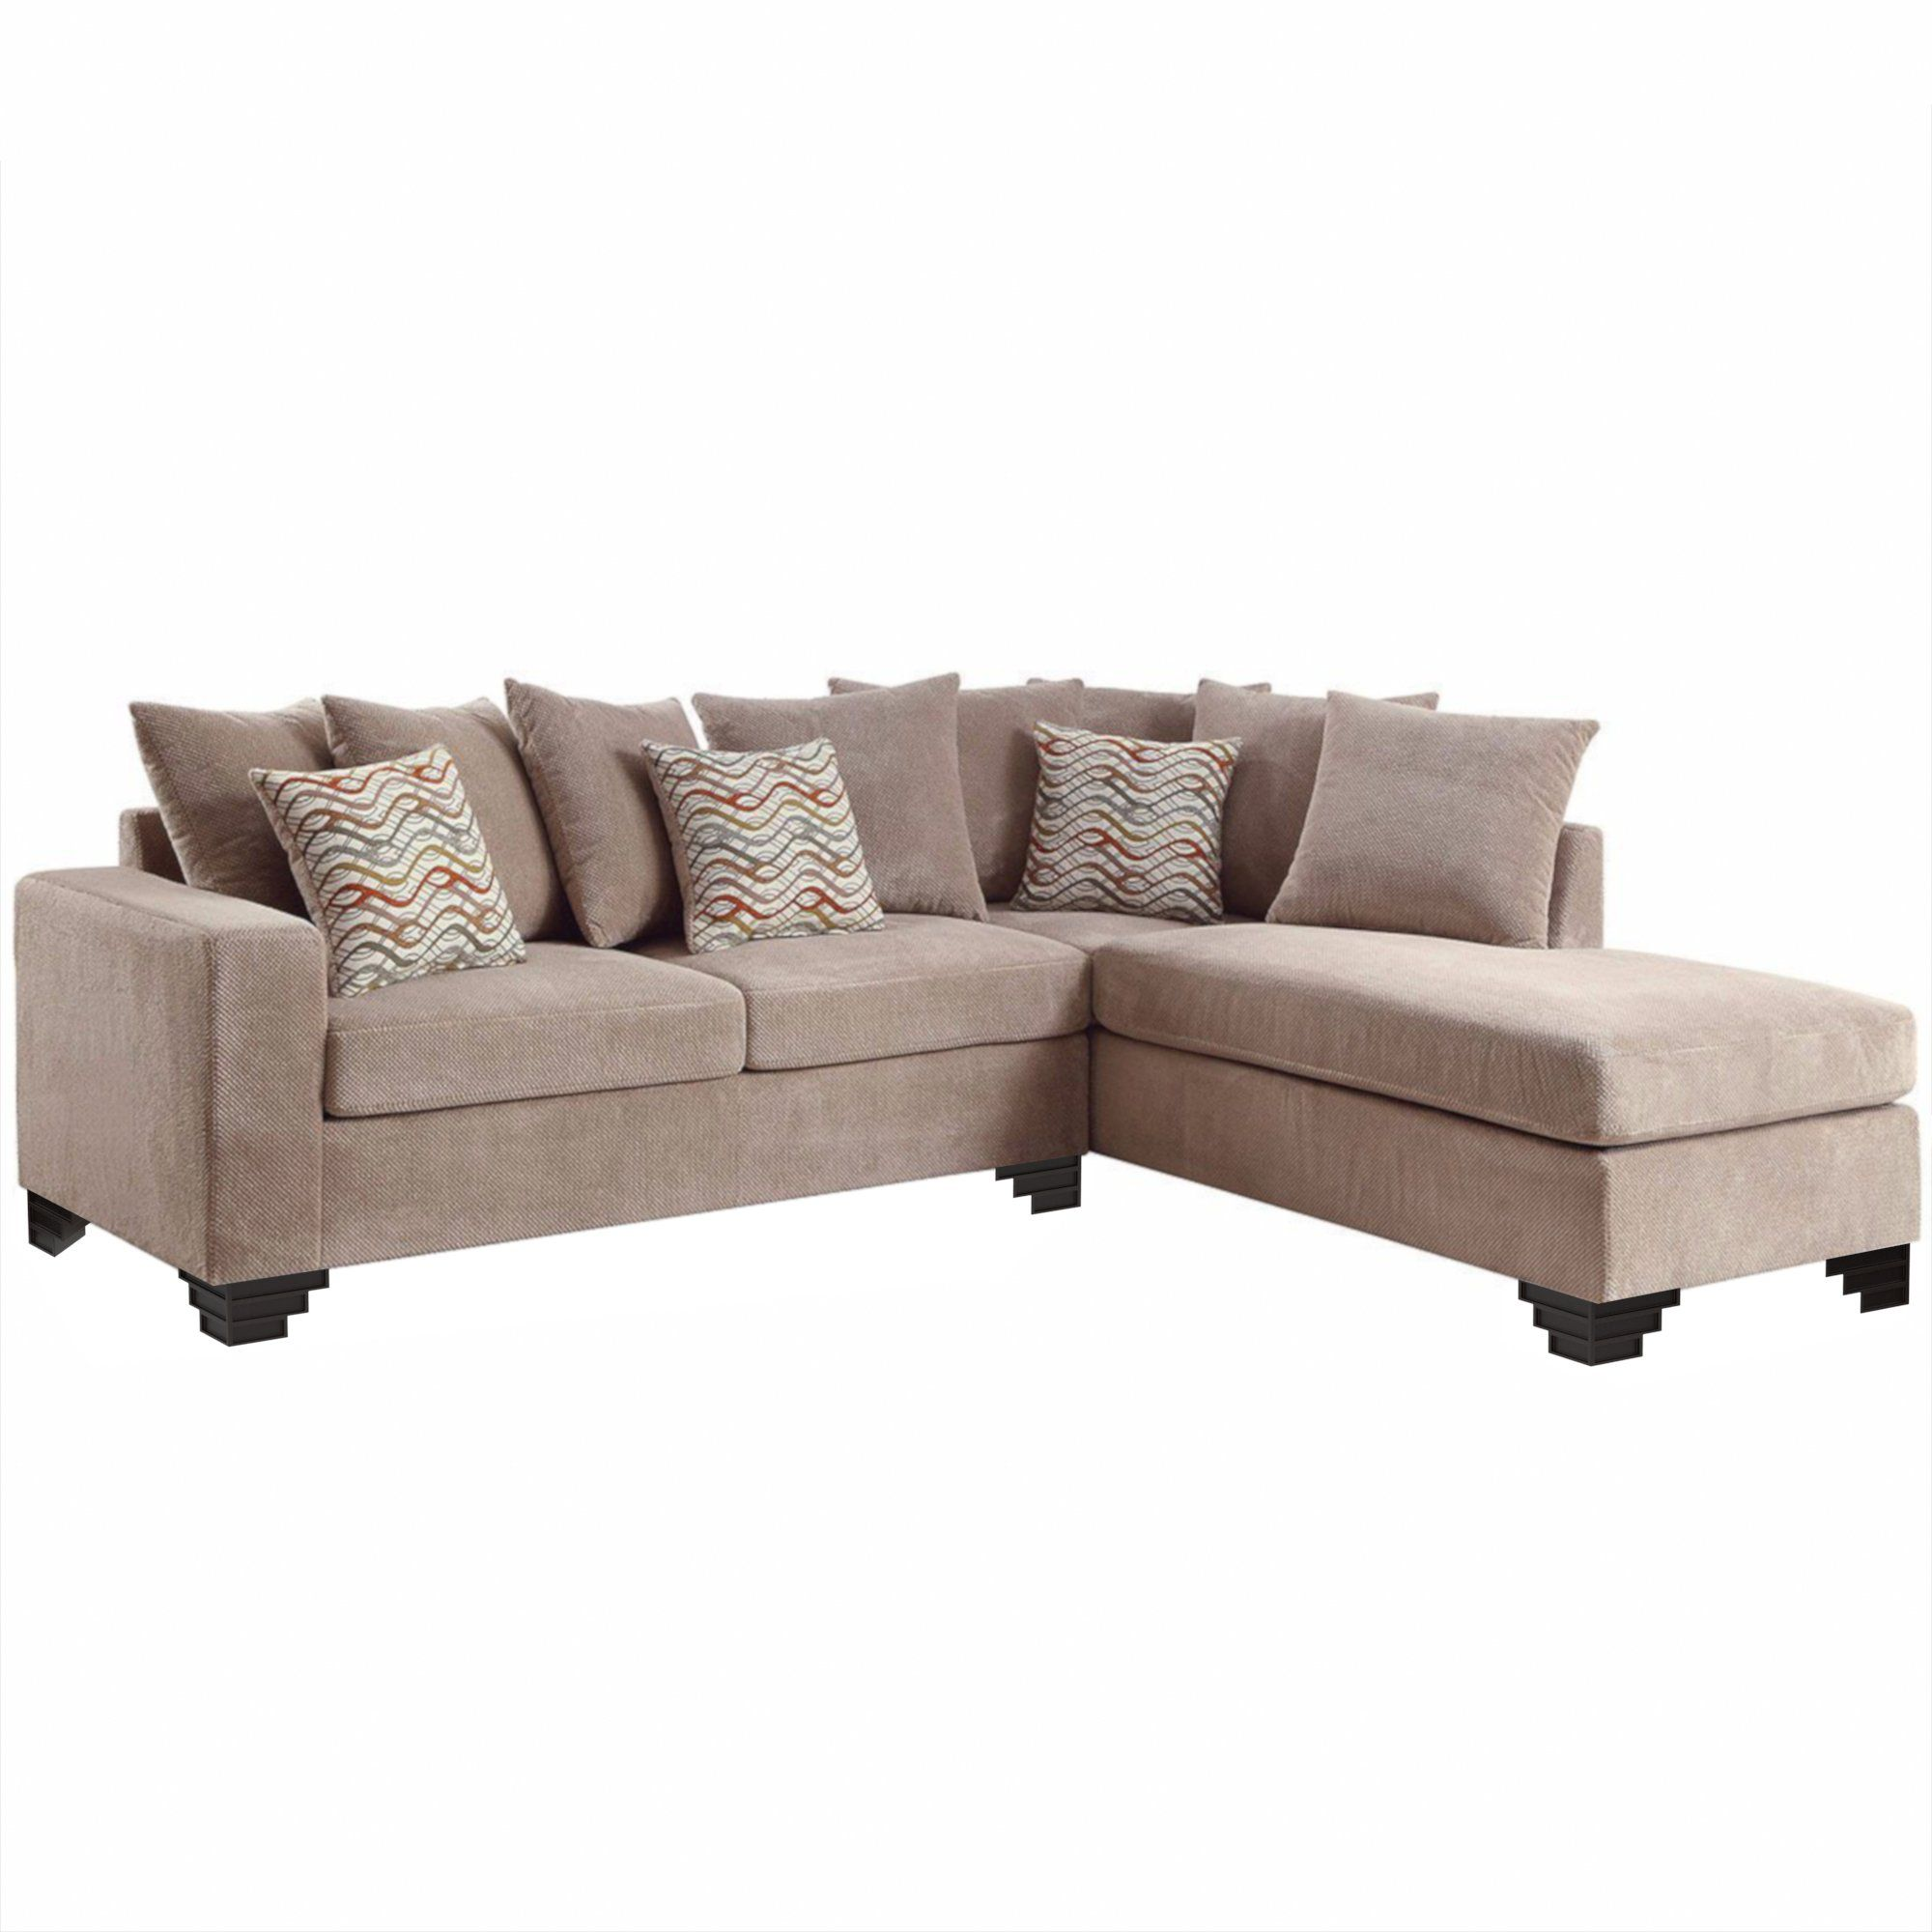 Olly Taupe 2-Piece Reversible Sectional